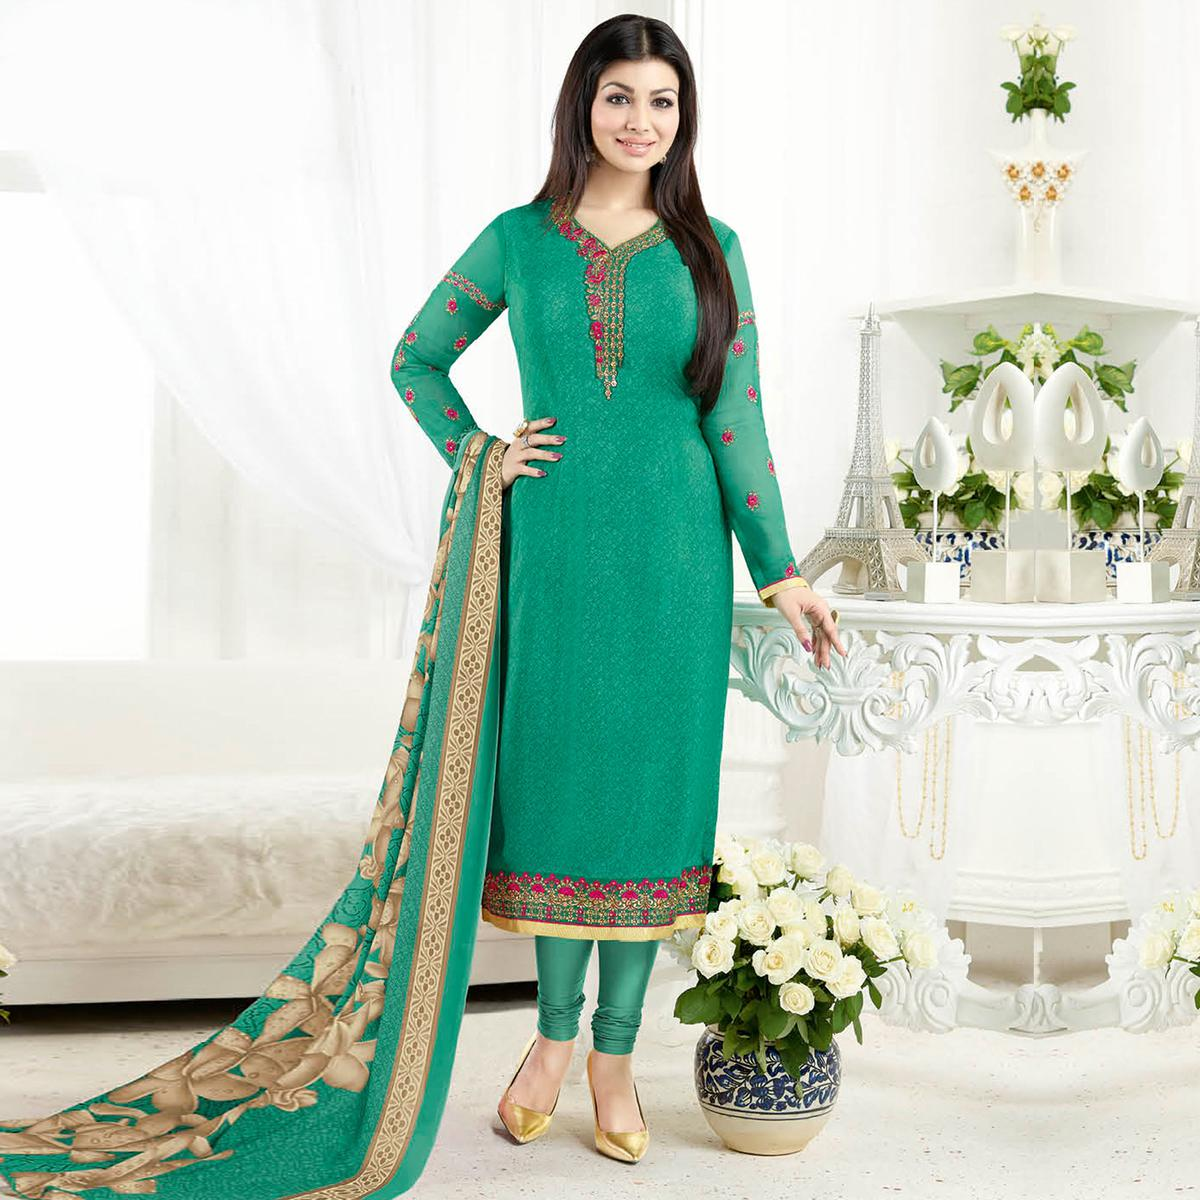 Jazzy Green Colored Embroidered Party Wear Crepe Salwar Suit